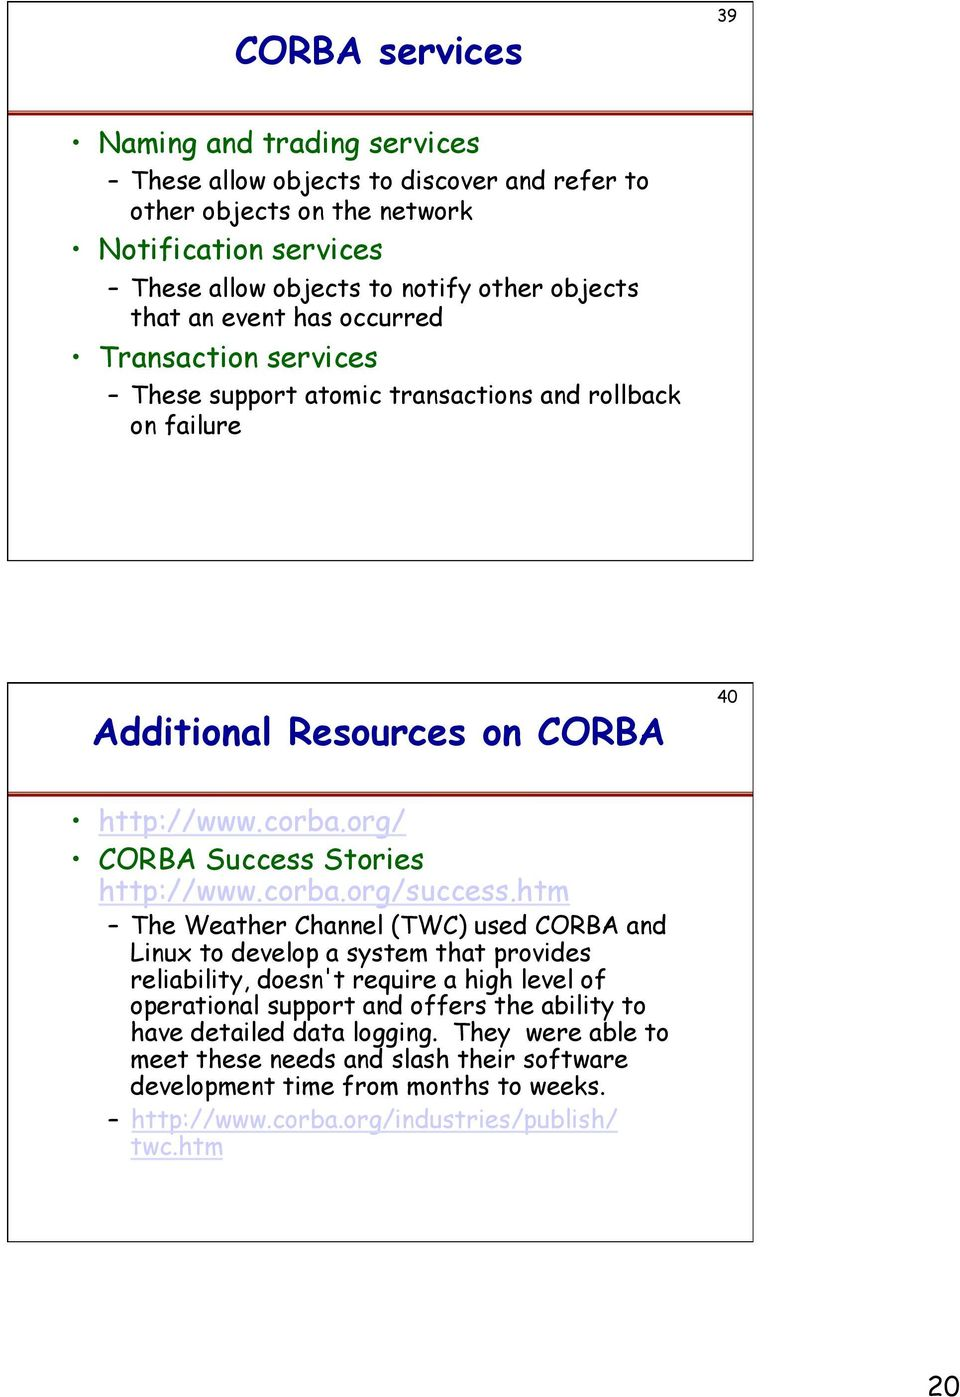 org/ CORBA Success Stories http://www.corba.org/success.